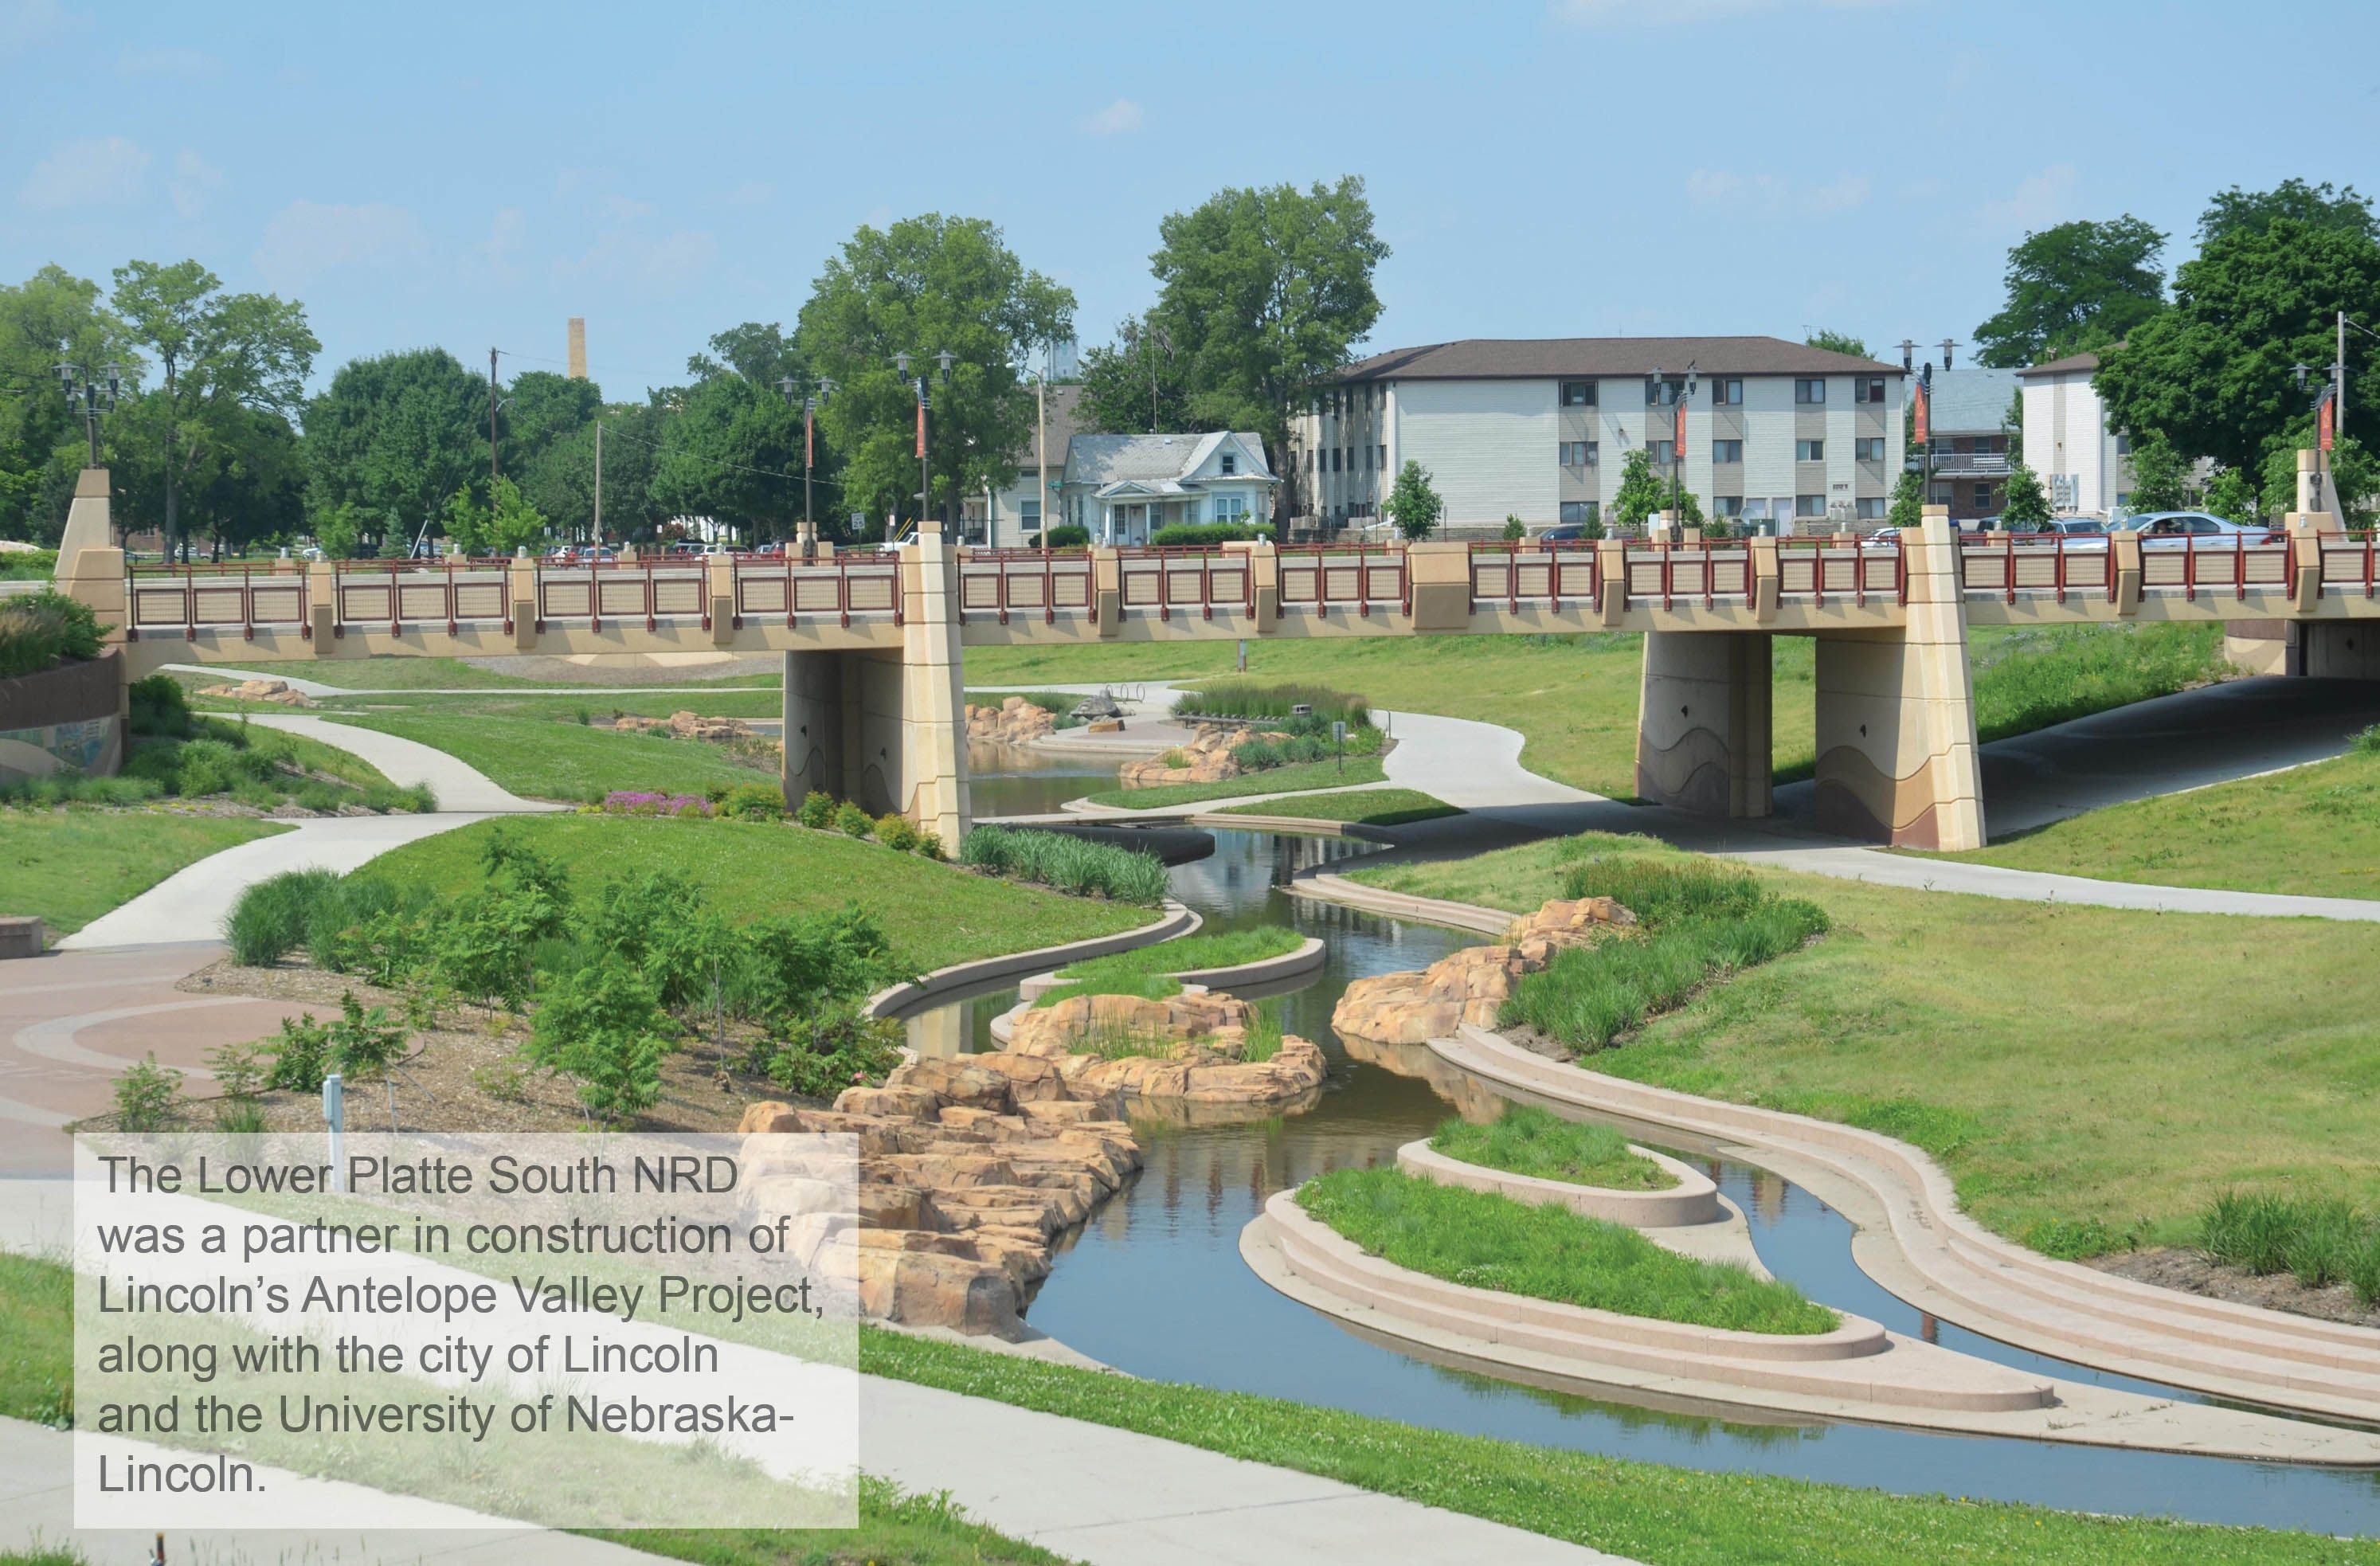 Lower Platte South NRD: Protecting lives, property and the future